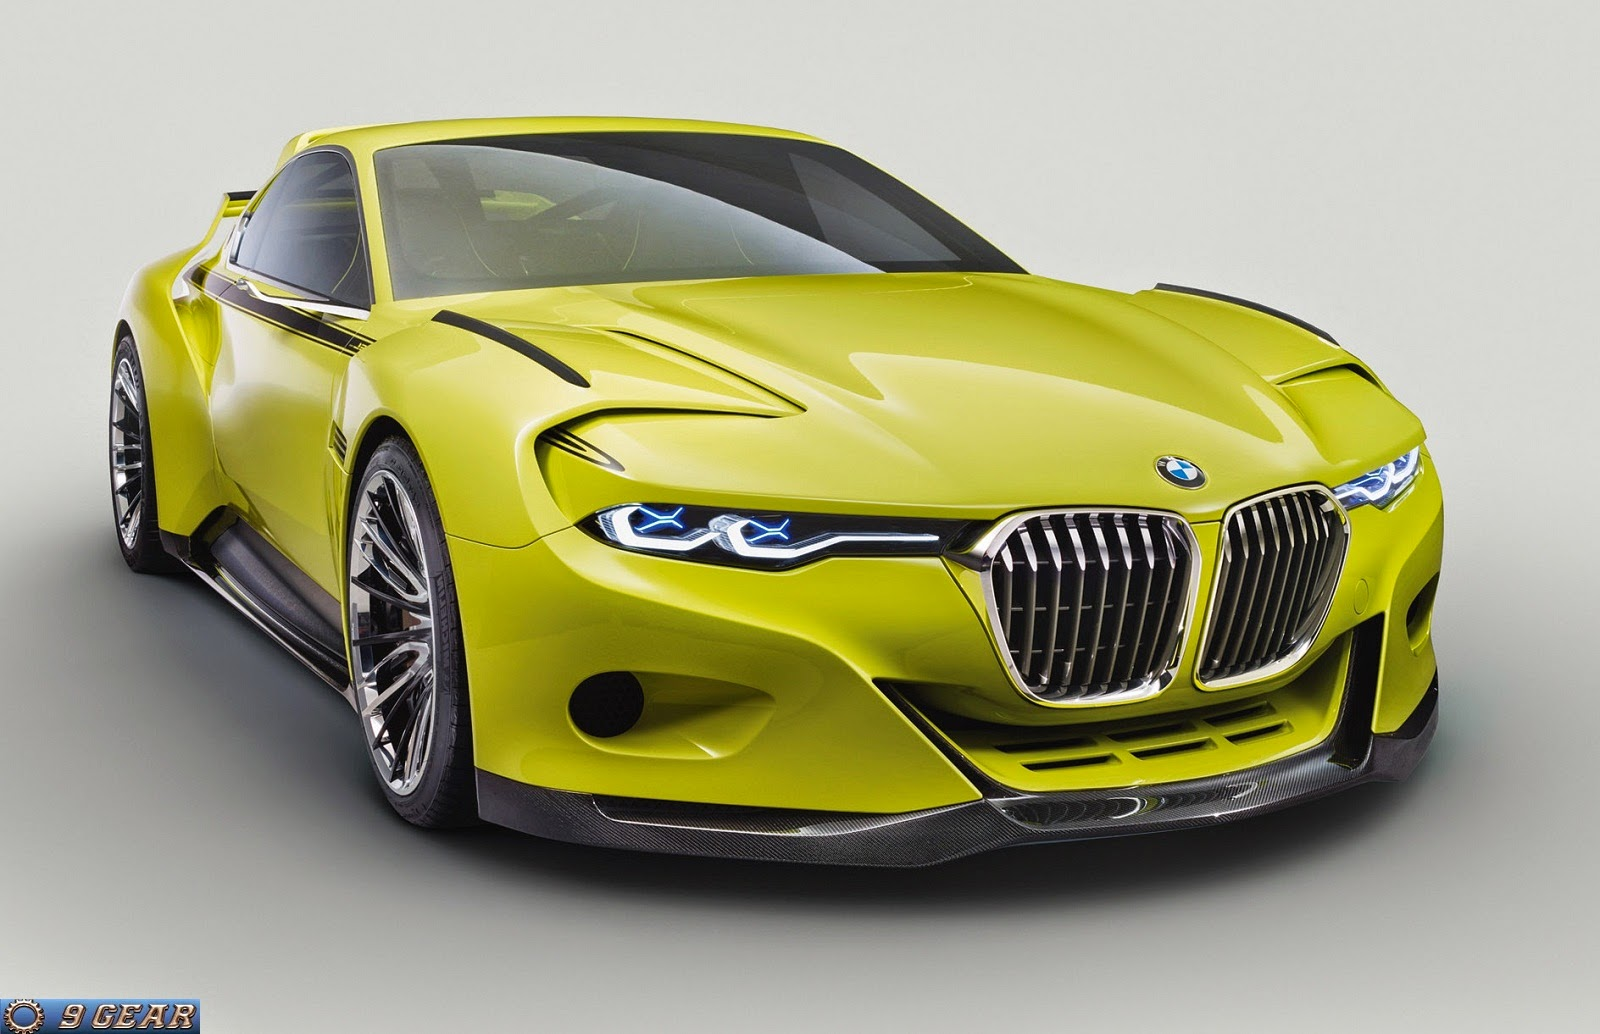 car reviews new car pictures for 2018 2019 power and elegance bmw 3 0 csl hommage concept. Black Bedroom Furniture Sets. Home Design Ideas